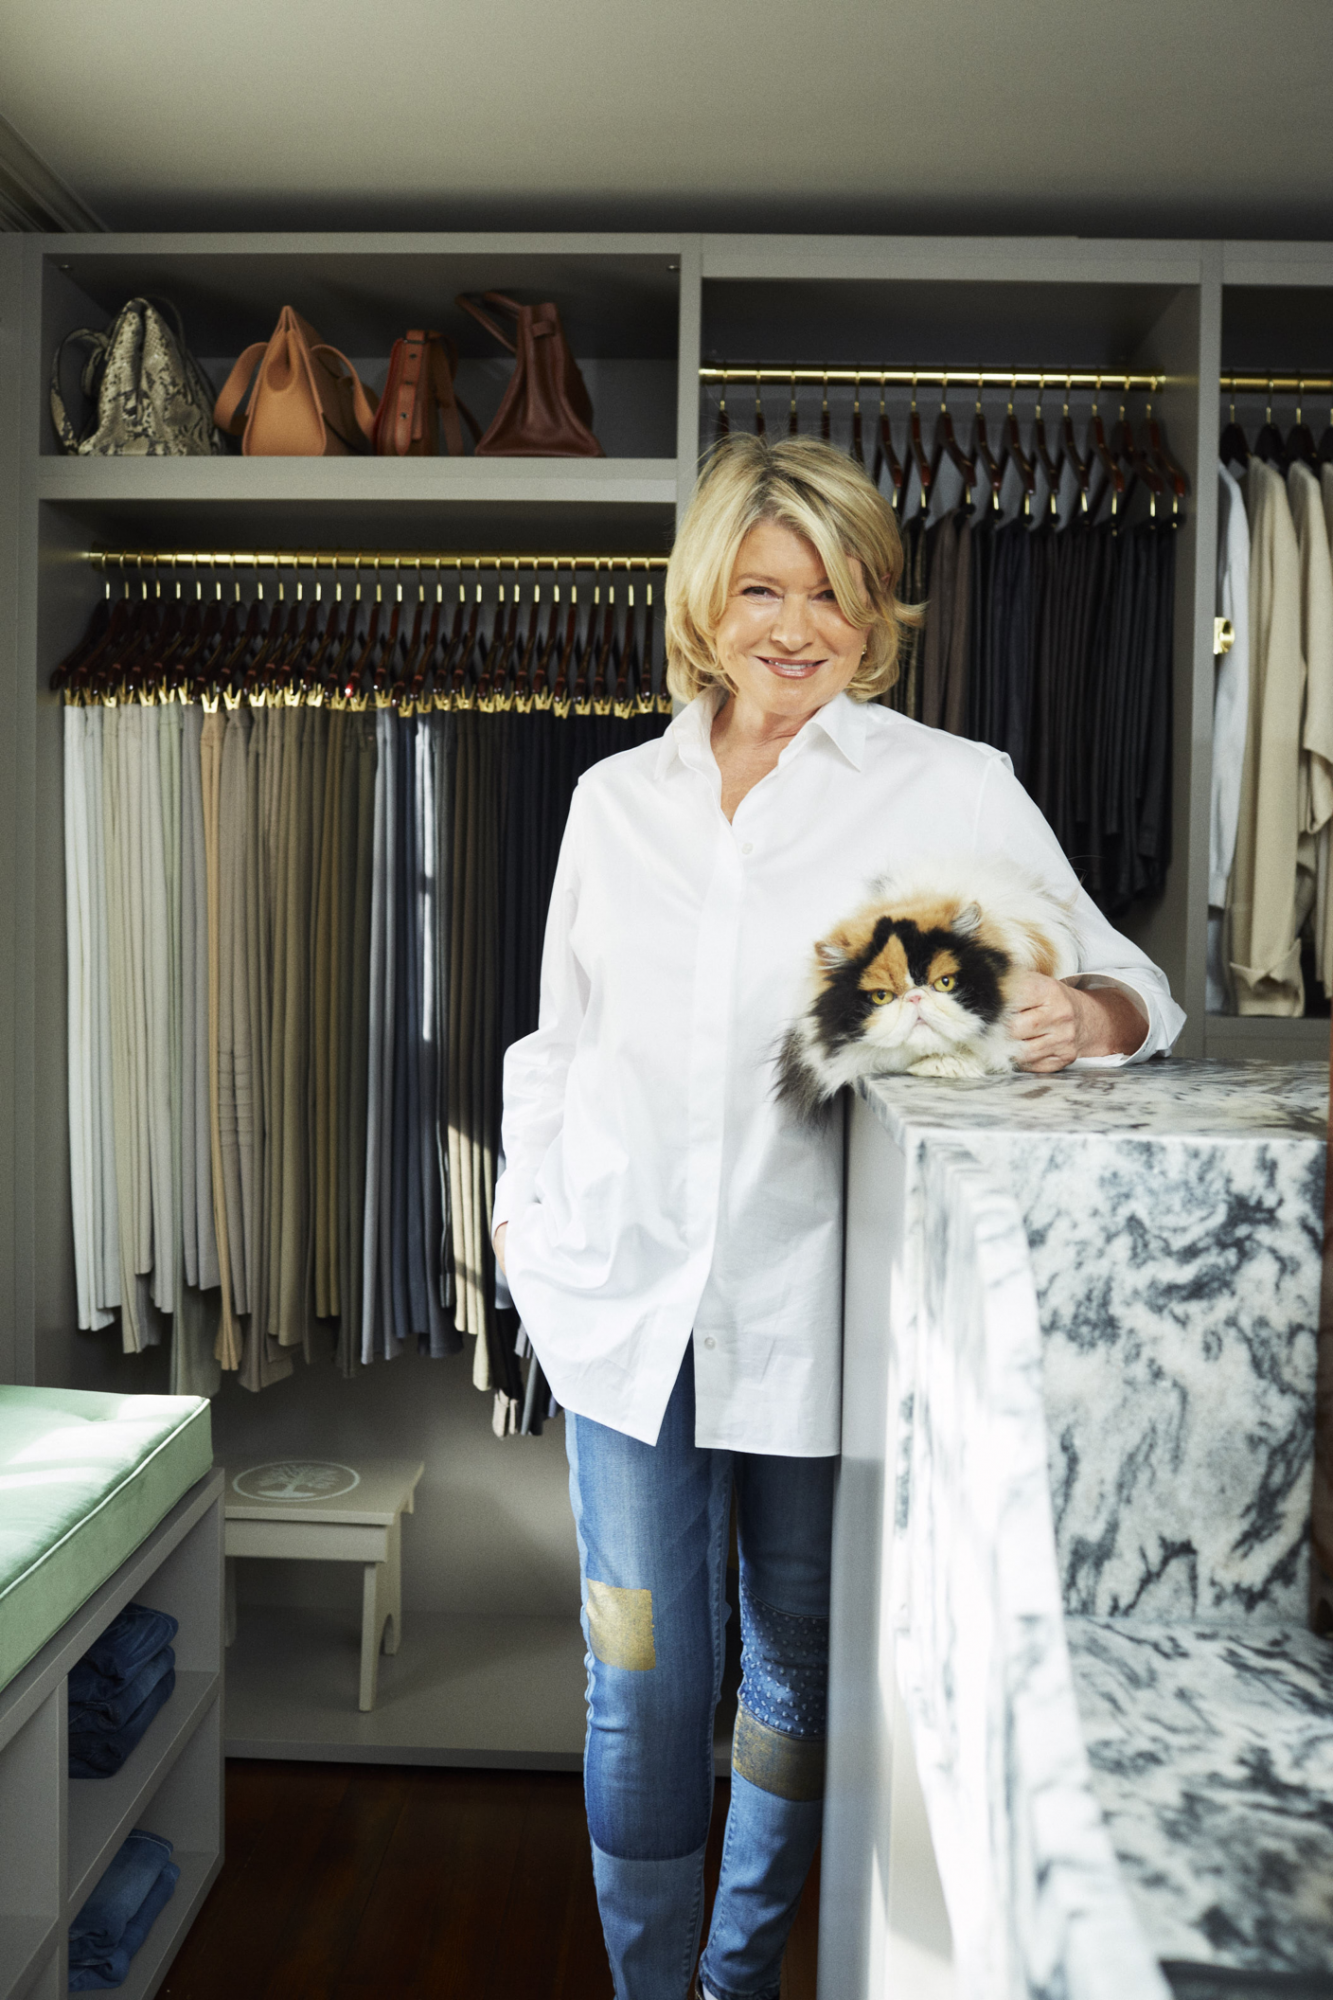 See Inside Martha Stewart's Meticulous (and Massive!) Walk-in Closet image001_9ad46ca9ffcbb23f7c867b21555a30c9